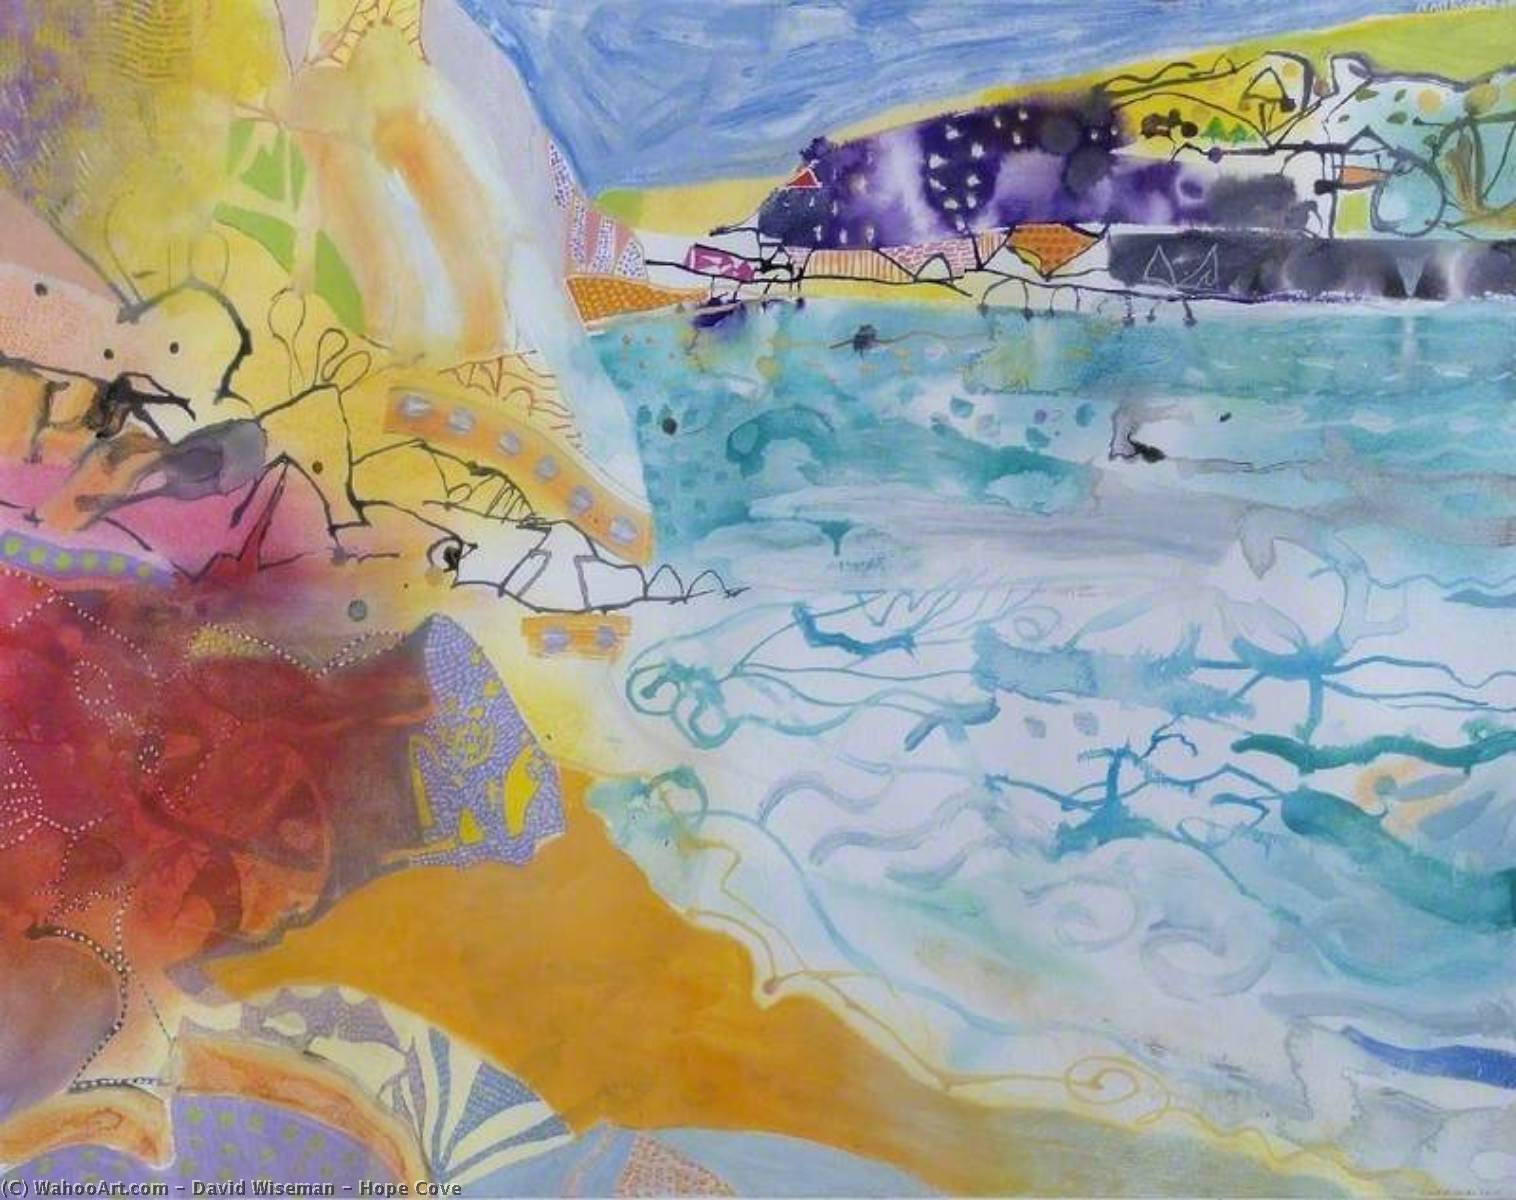 Wikioo.org - The Encyclopedia of Fine Arts - Painting, Artwork by David Wiseman - Hope Cove